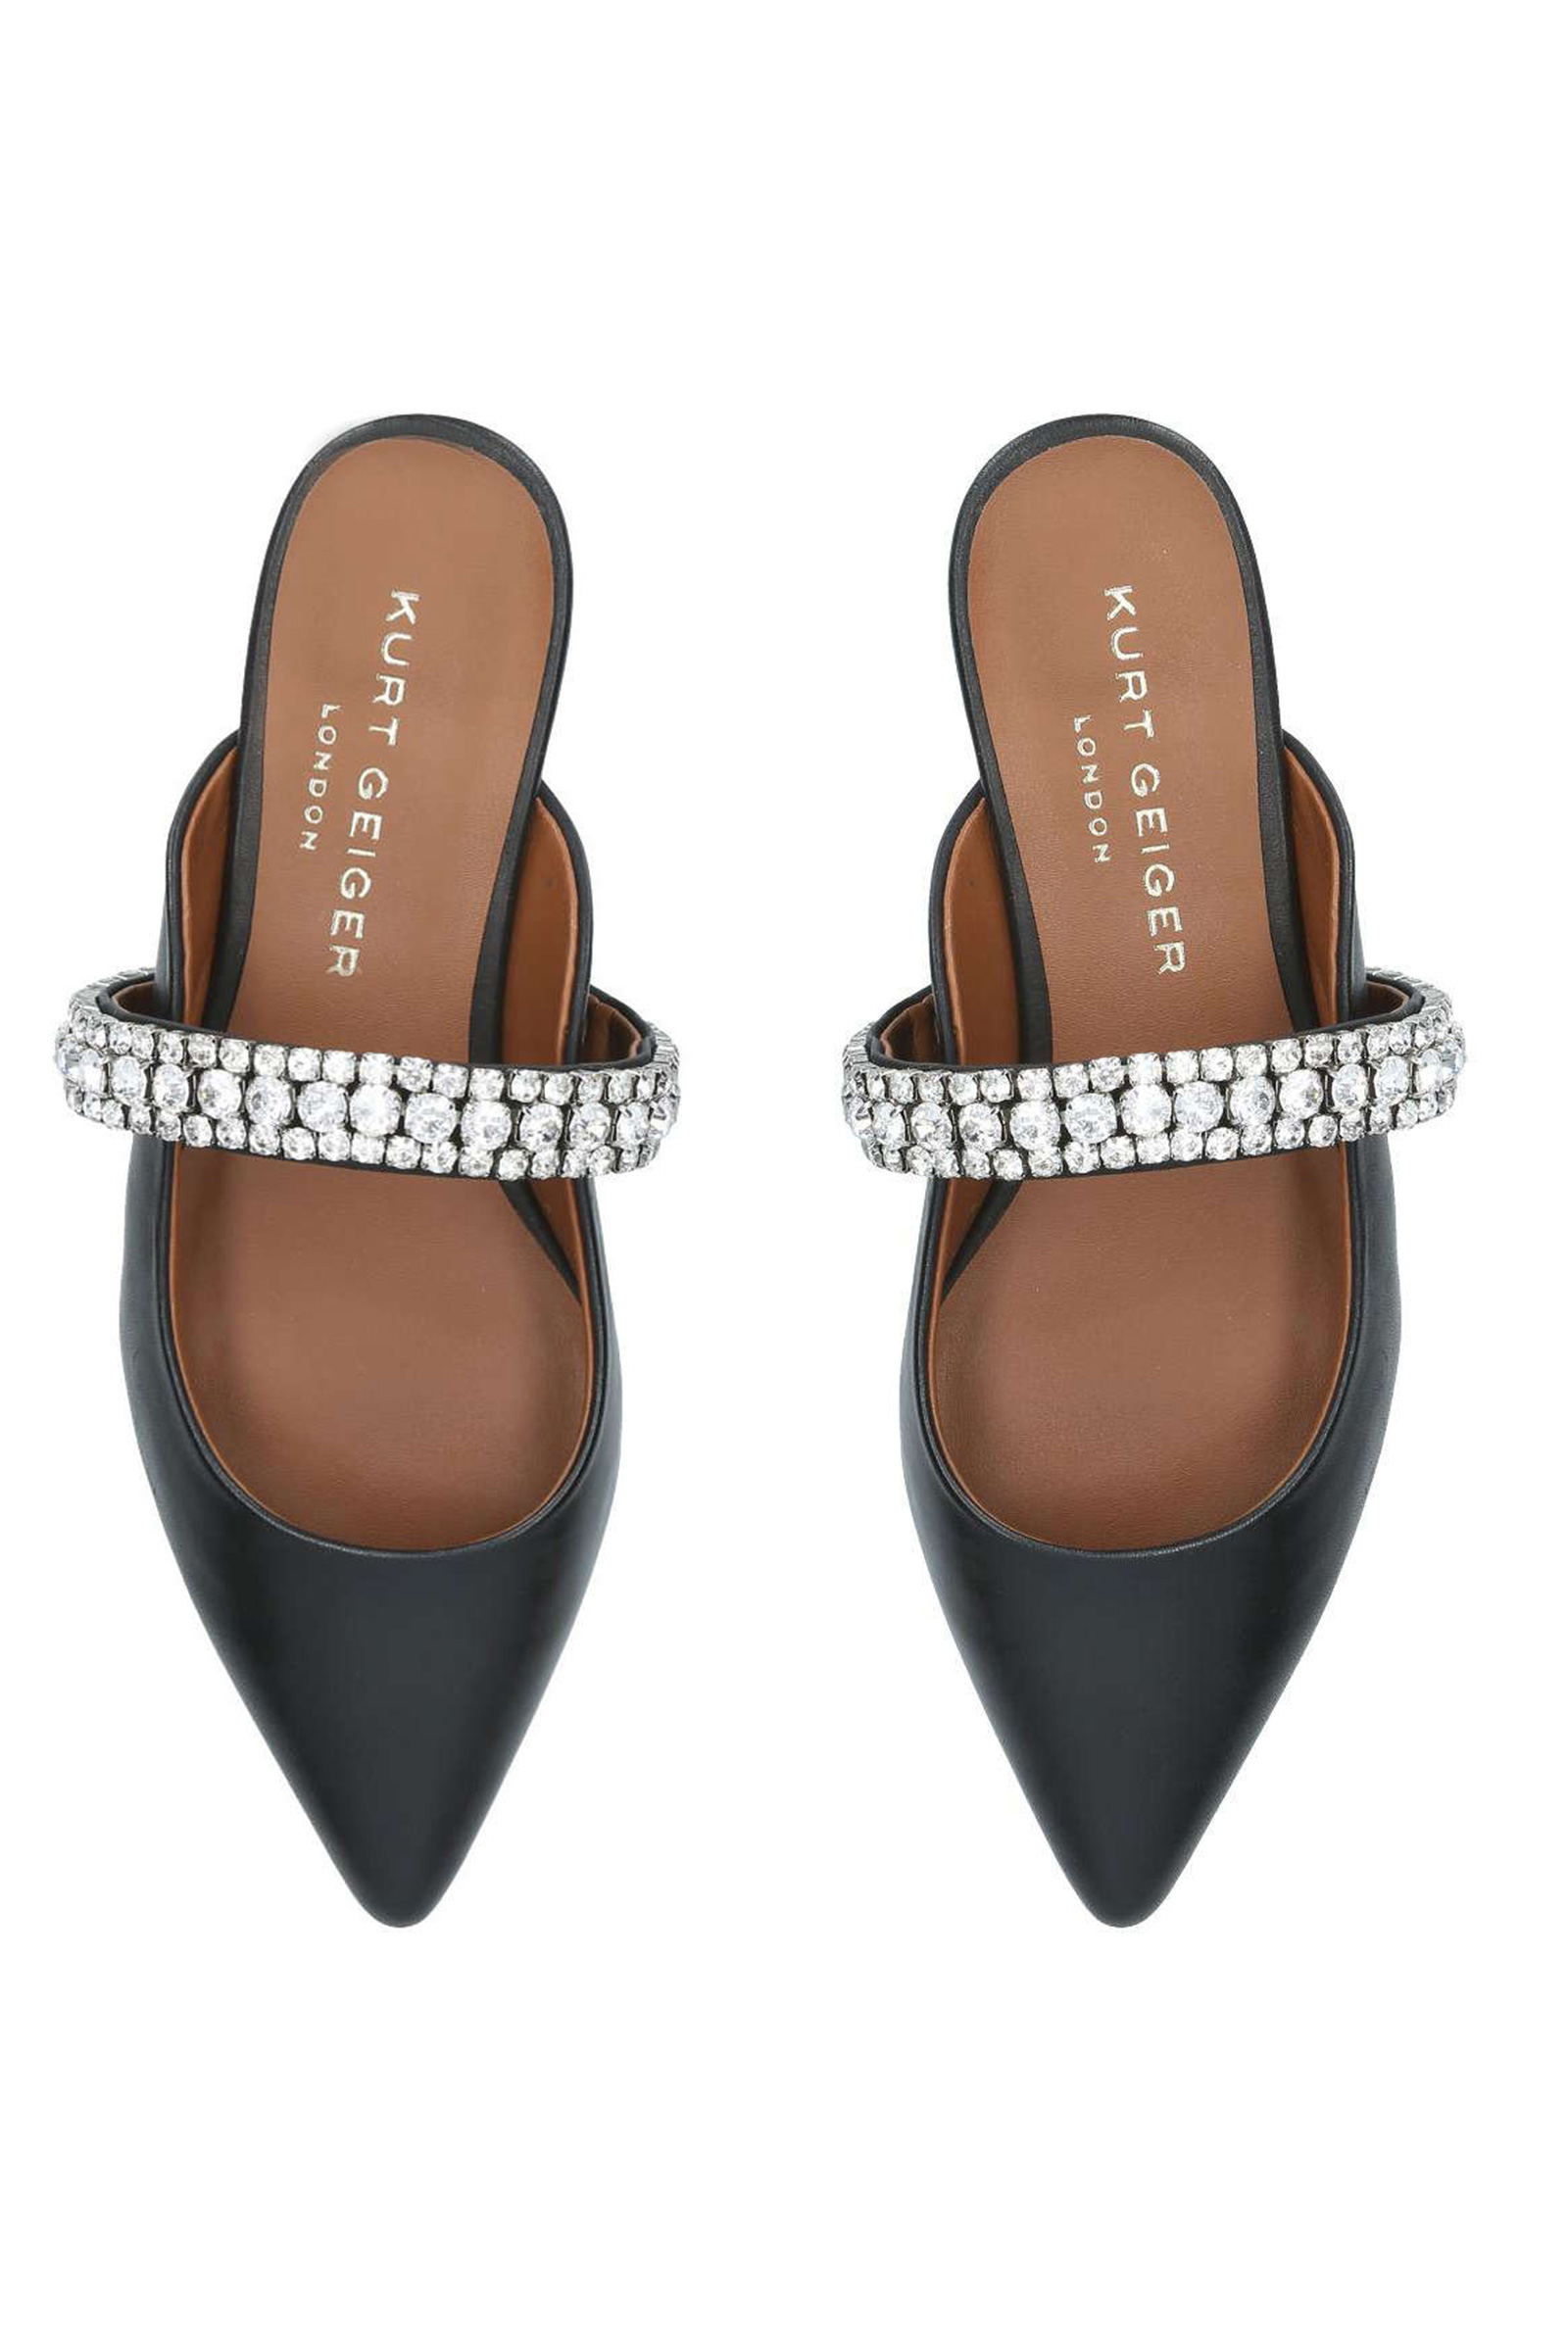 Click to Buy Kurt Geiger Shoes